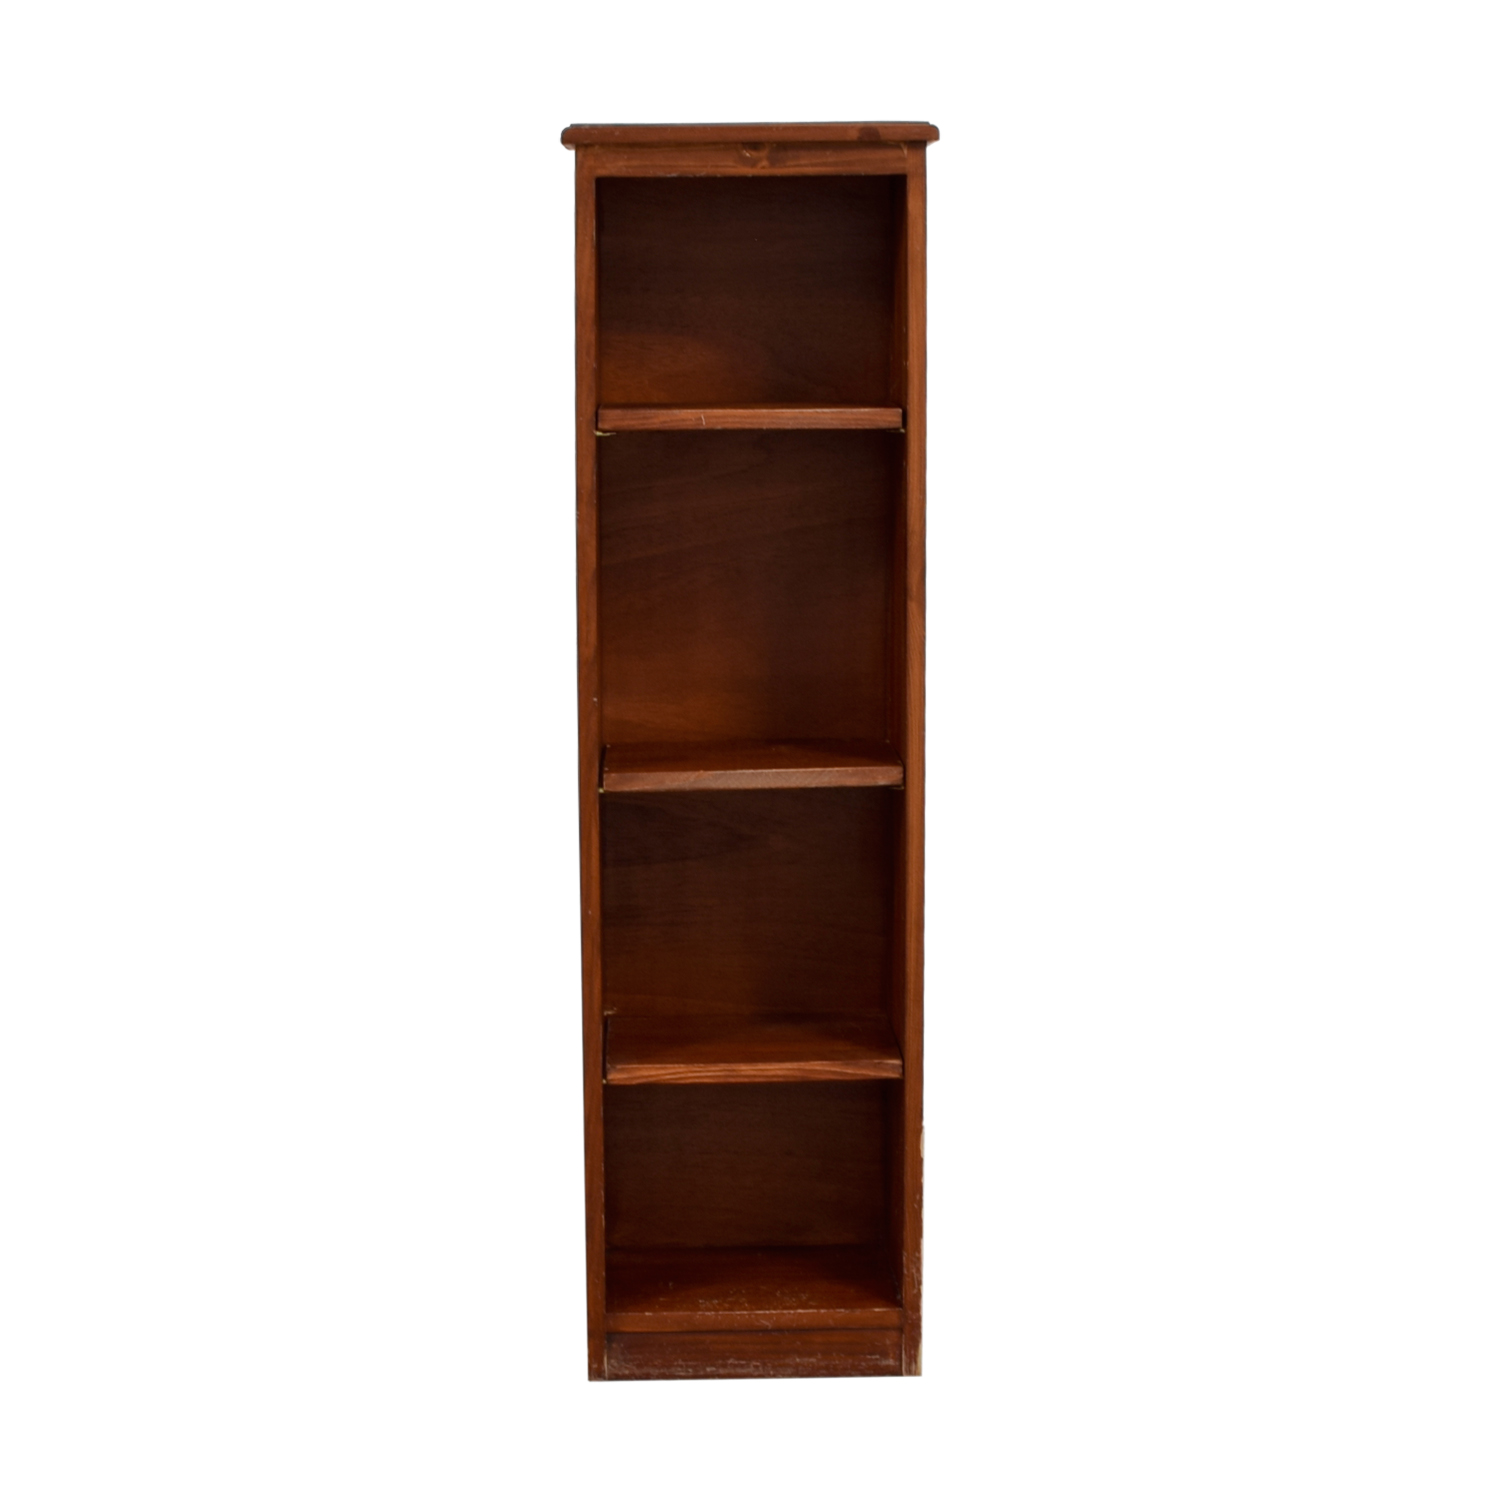 Gotham Cabinet Craft Narrow Wood Bookshelf Bookcases Shelving